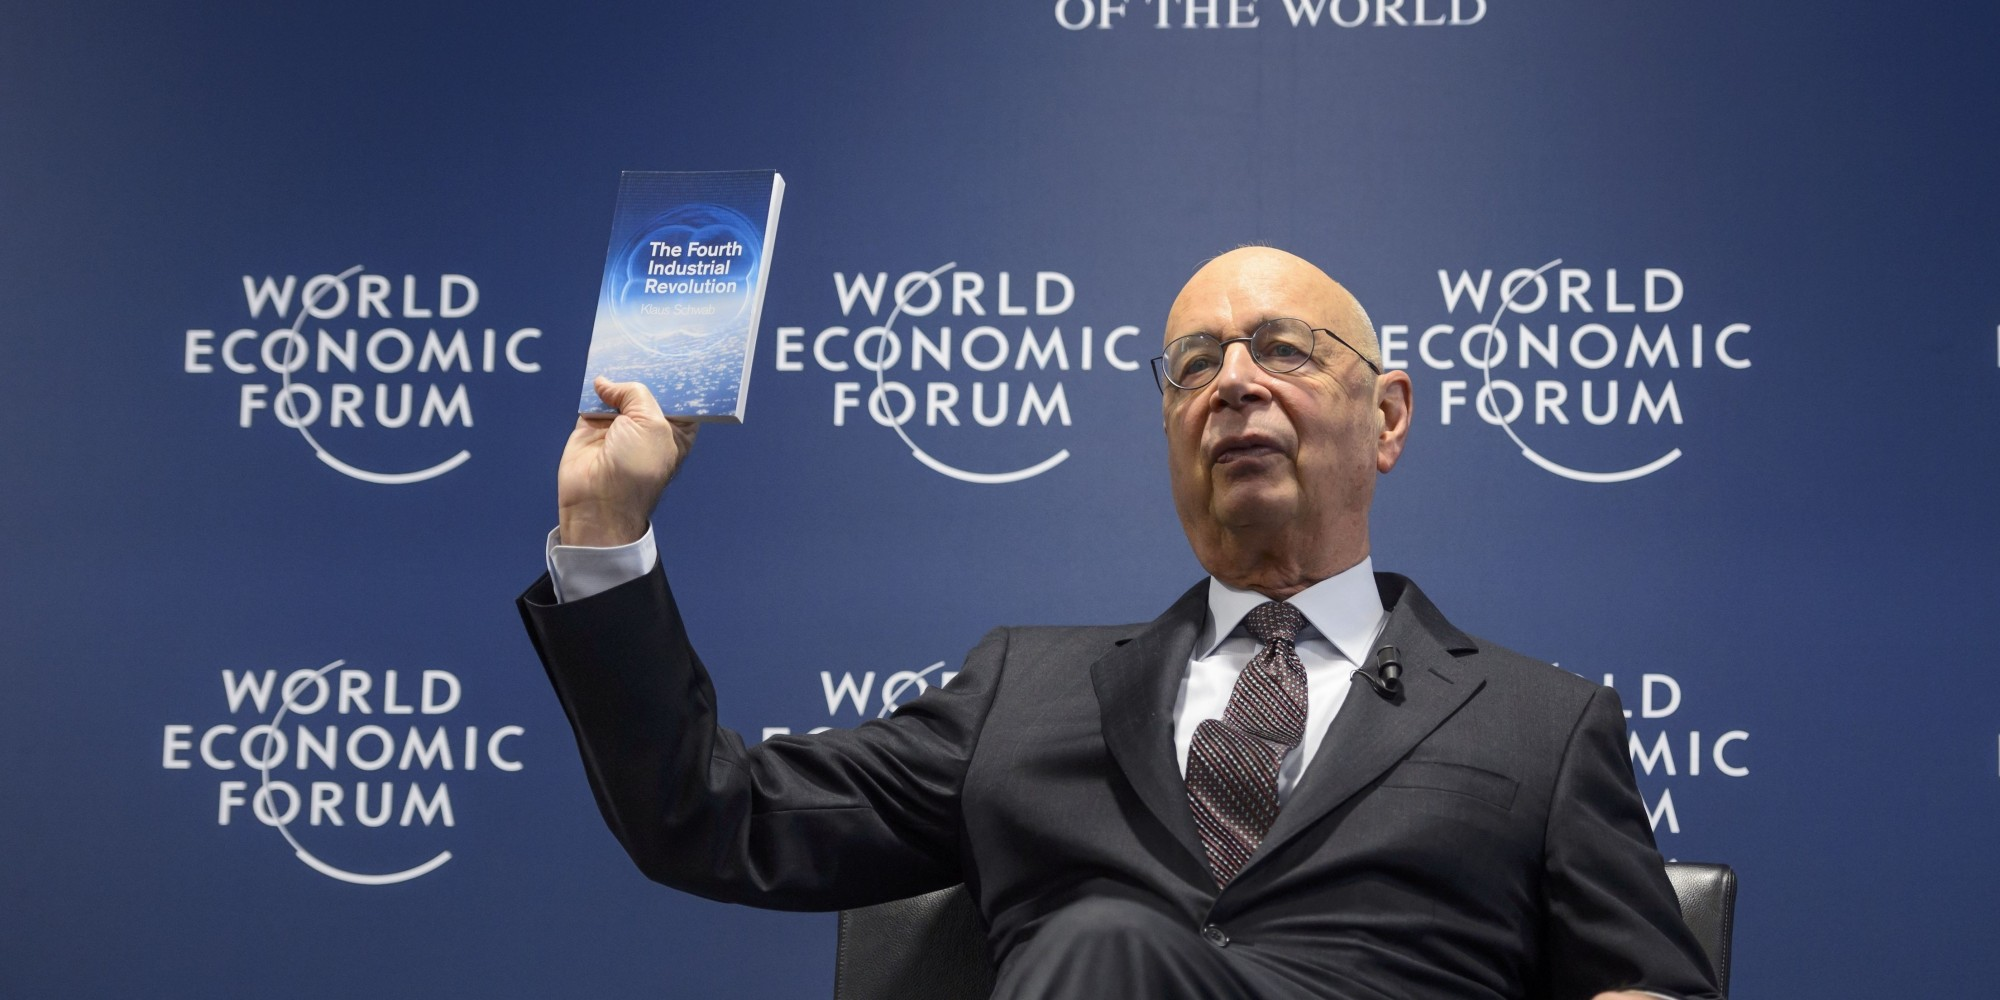 World Economic Forum (WEF) founder and executive chairman Klaus Schwab shows a book he wrote during a news conference on the programme of the Davos World Economic Forum WEF annual meeting at the Forum's headquarters in Cologny, near Geneva, on January 13, 2016. This year's edition of the forum gathering of top politicians and business leaders in the plush Swiss ski resort of Davos is scheduled to take place from January 20 to 23.  / AFP / FABRICE COFFRINI        (Photo credit should read FABRICE COFFRINI/AFP/Getty Images)